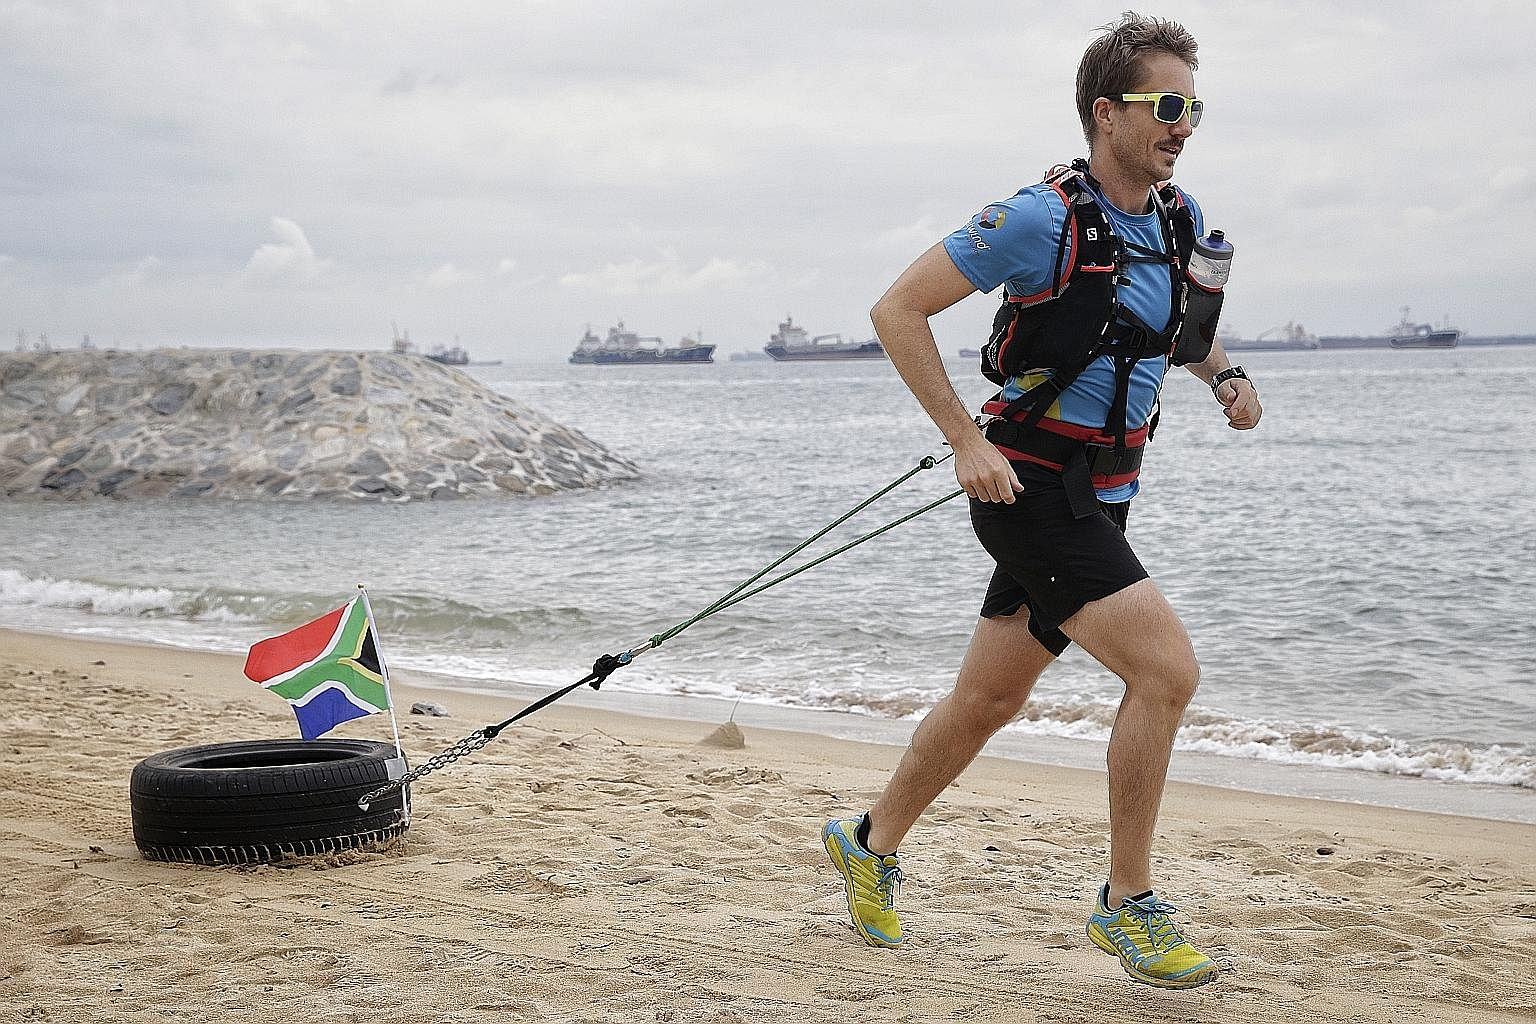 Jethro De Decker running on the beach with a 10kg tyre strapped to his body at East Coast Park yesterday. He will take part in the Standard Chartered Marathon Singapore next month as part of his training to trek from Antarctica to the South Pole on h